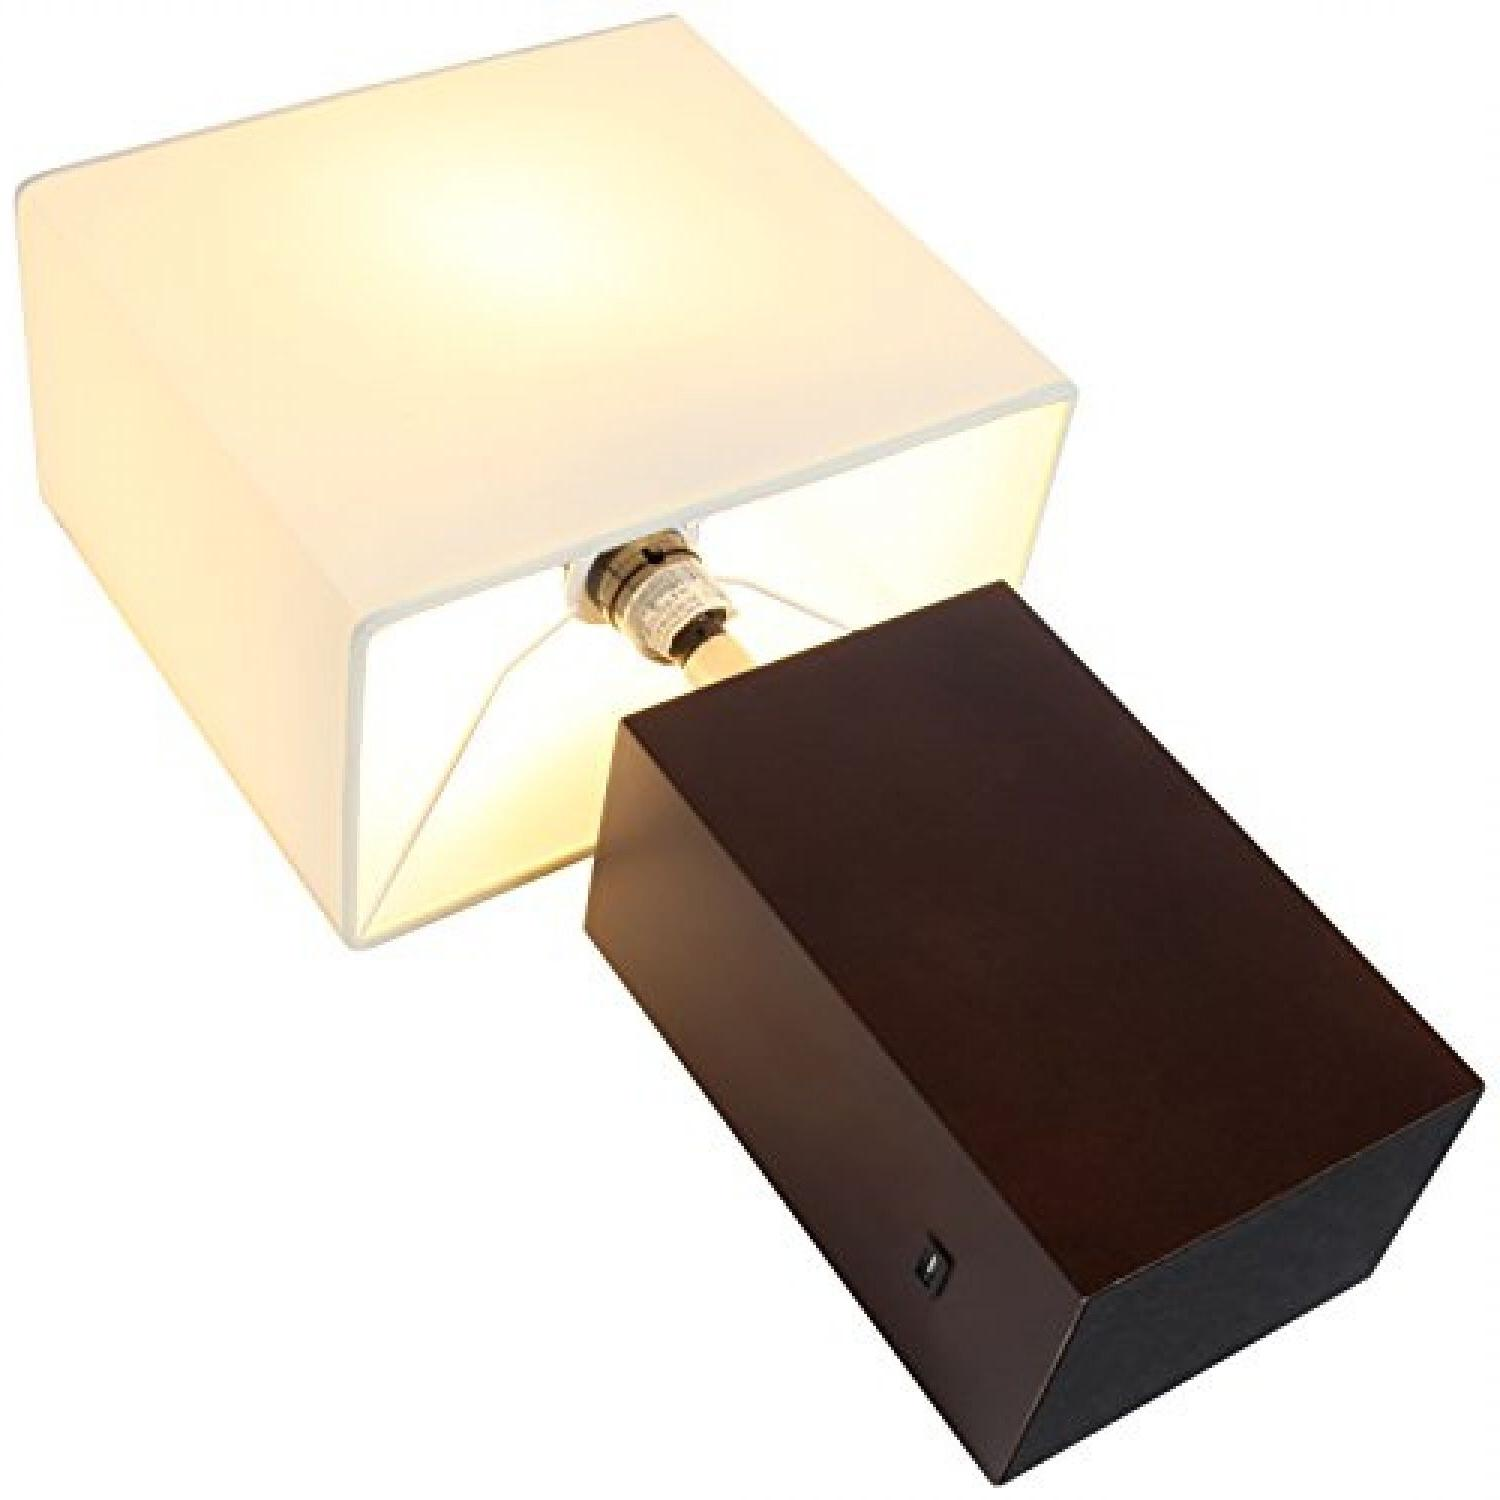 USB Lamp Led Modern Bedside Nightstand Lamps For Charging Phones